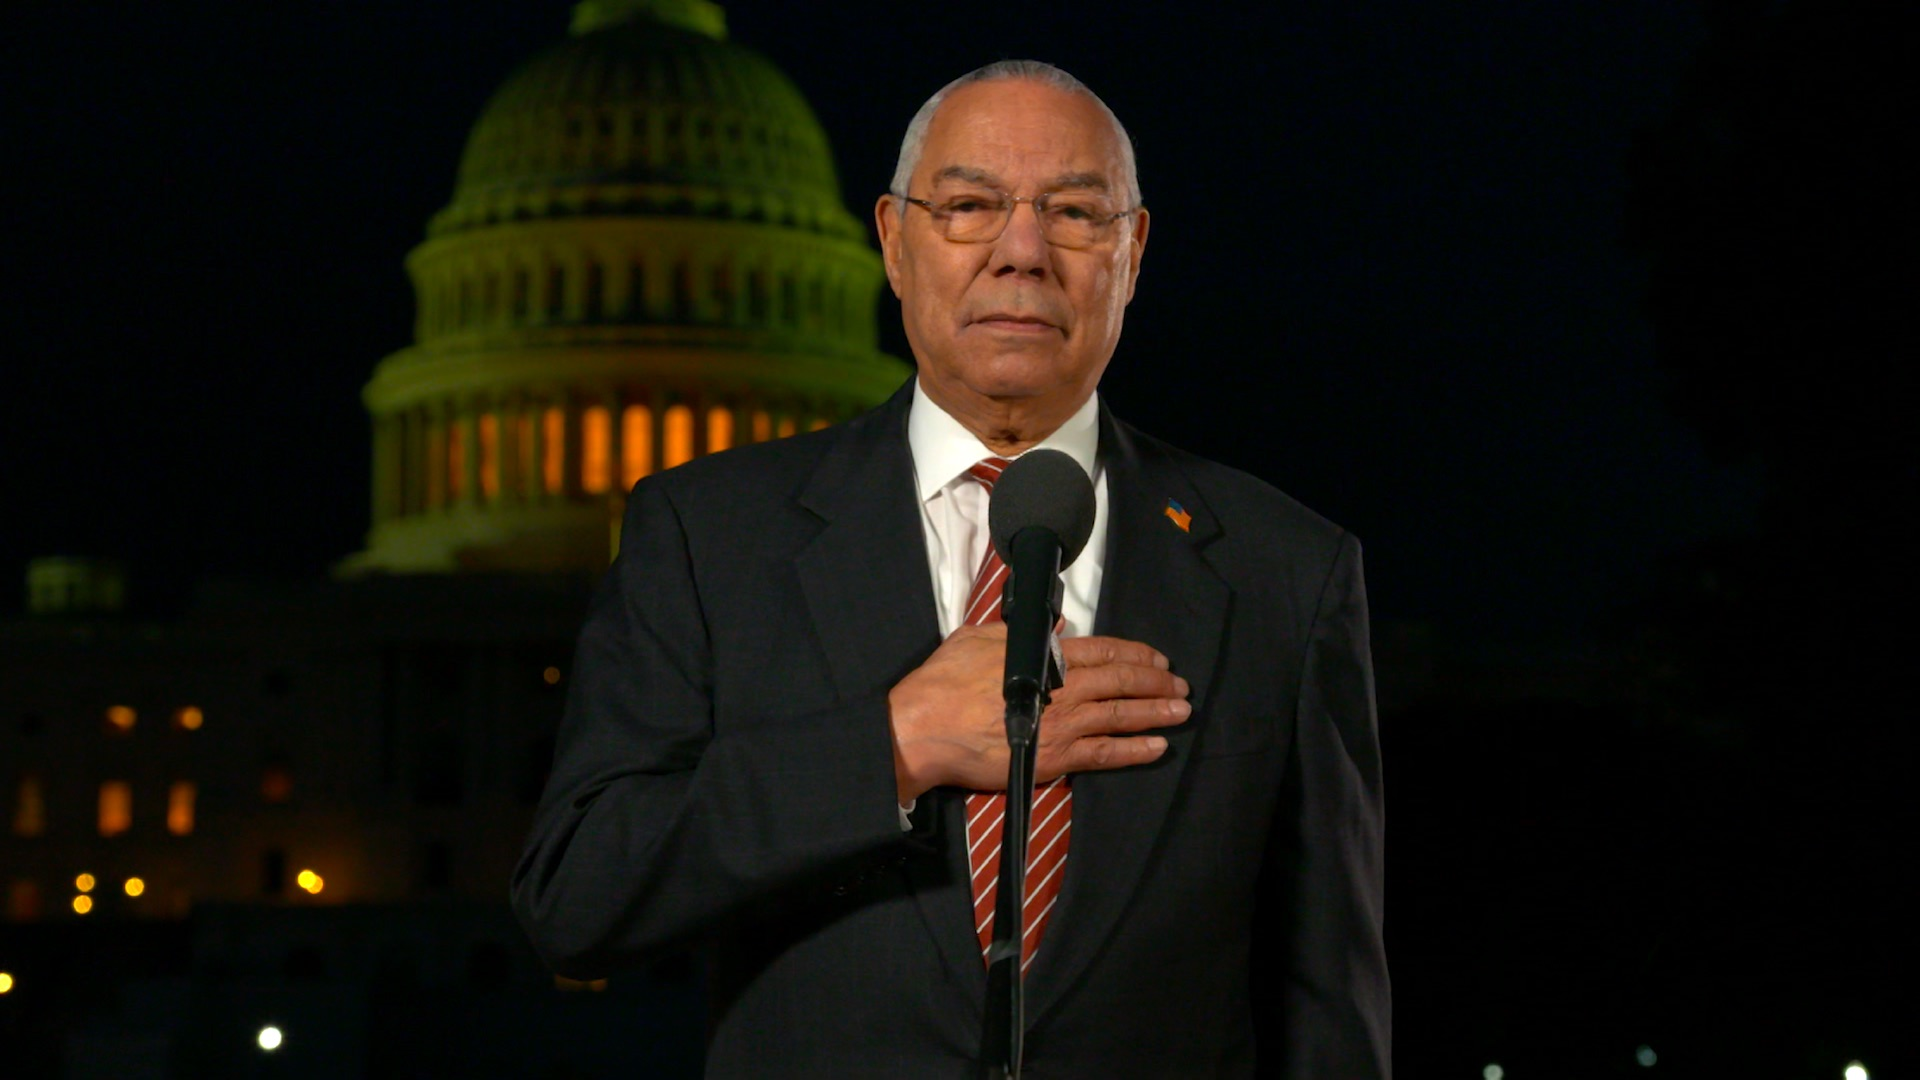 General Colin L. Powell on the 2020 Concert